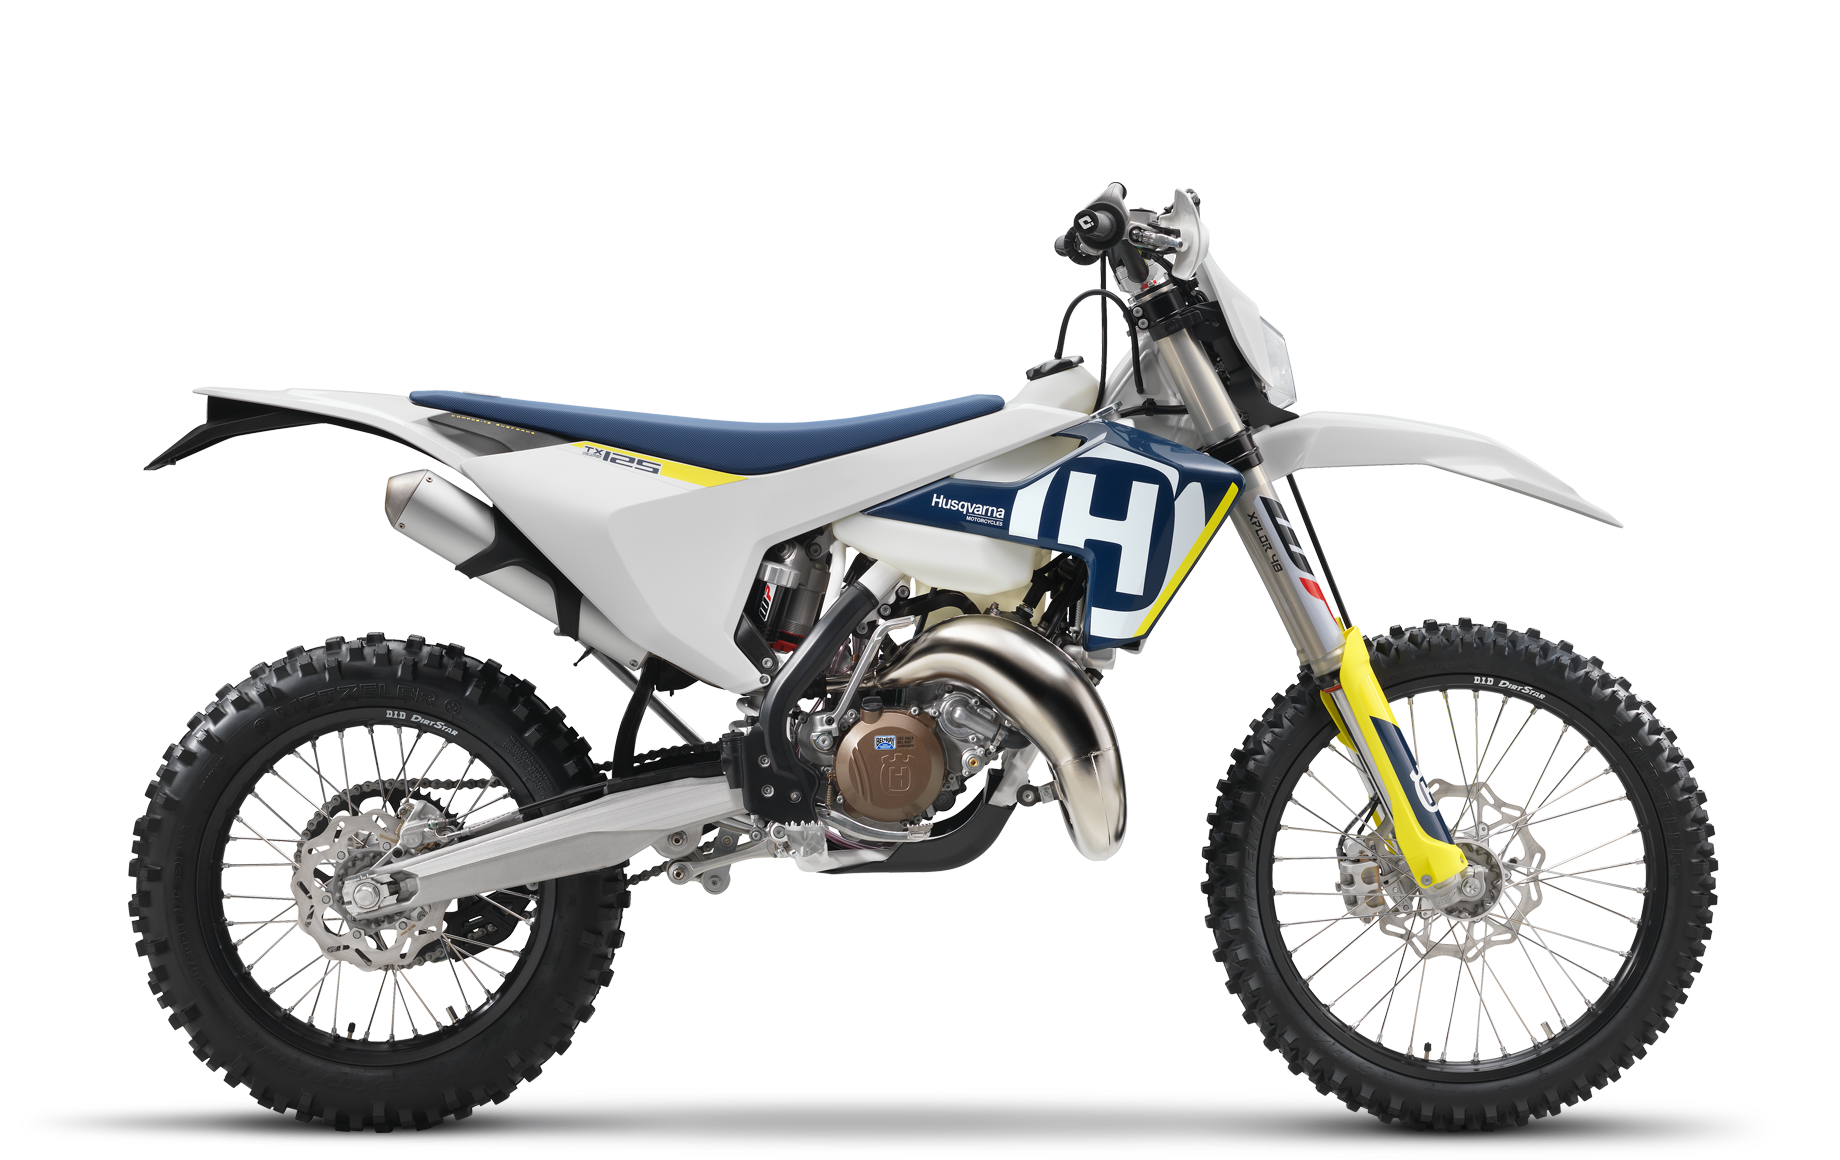 TX 125 - Electric Start Model